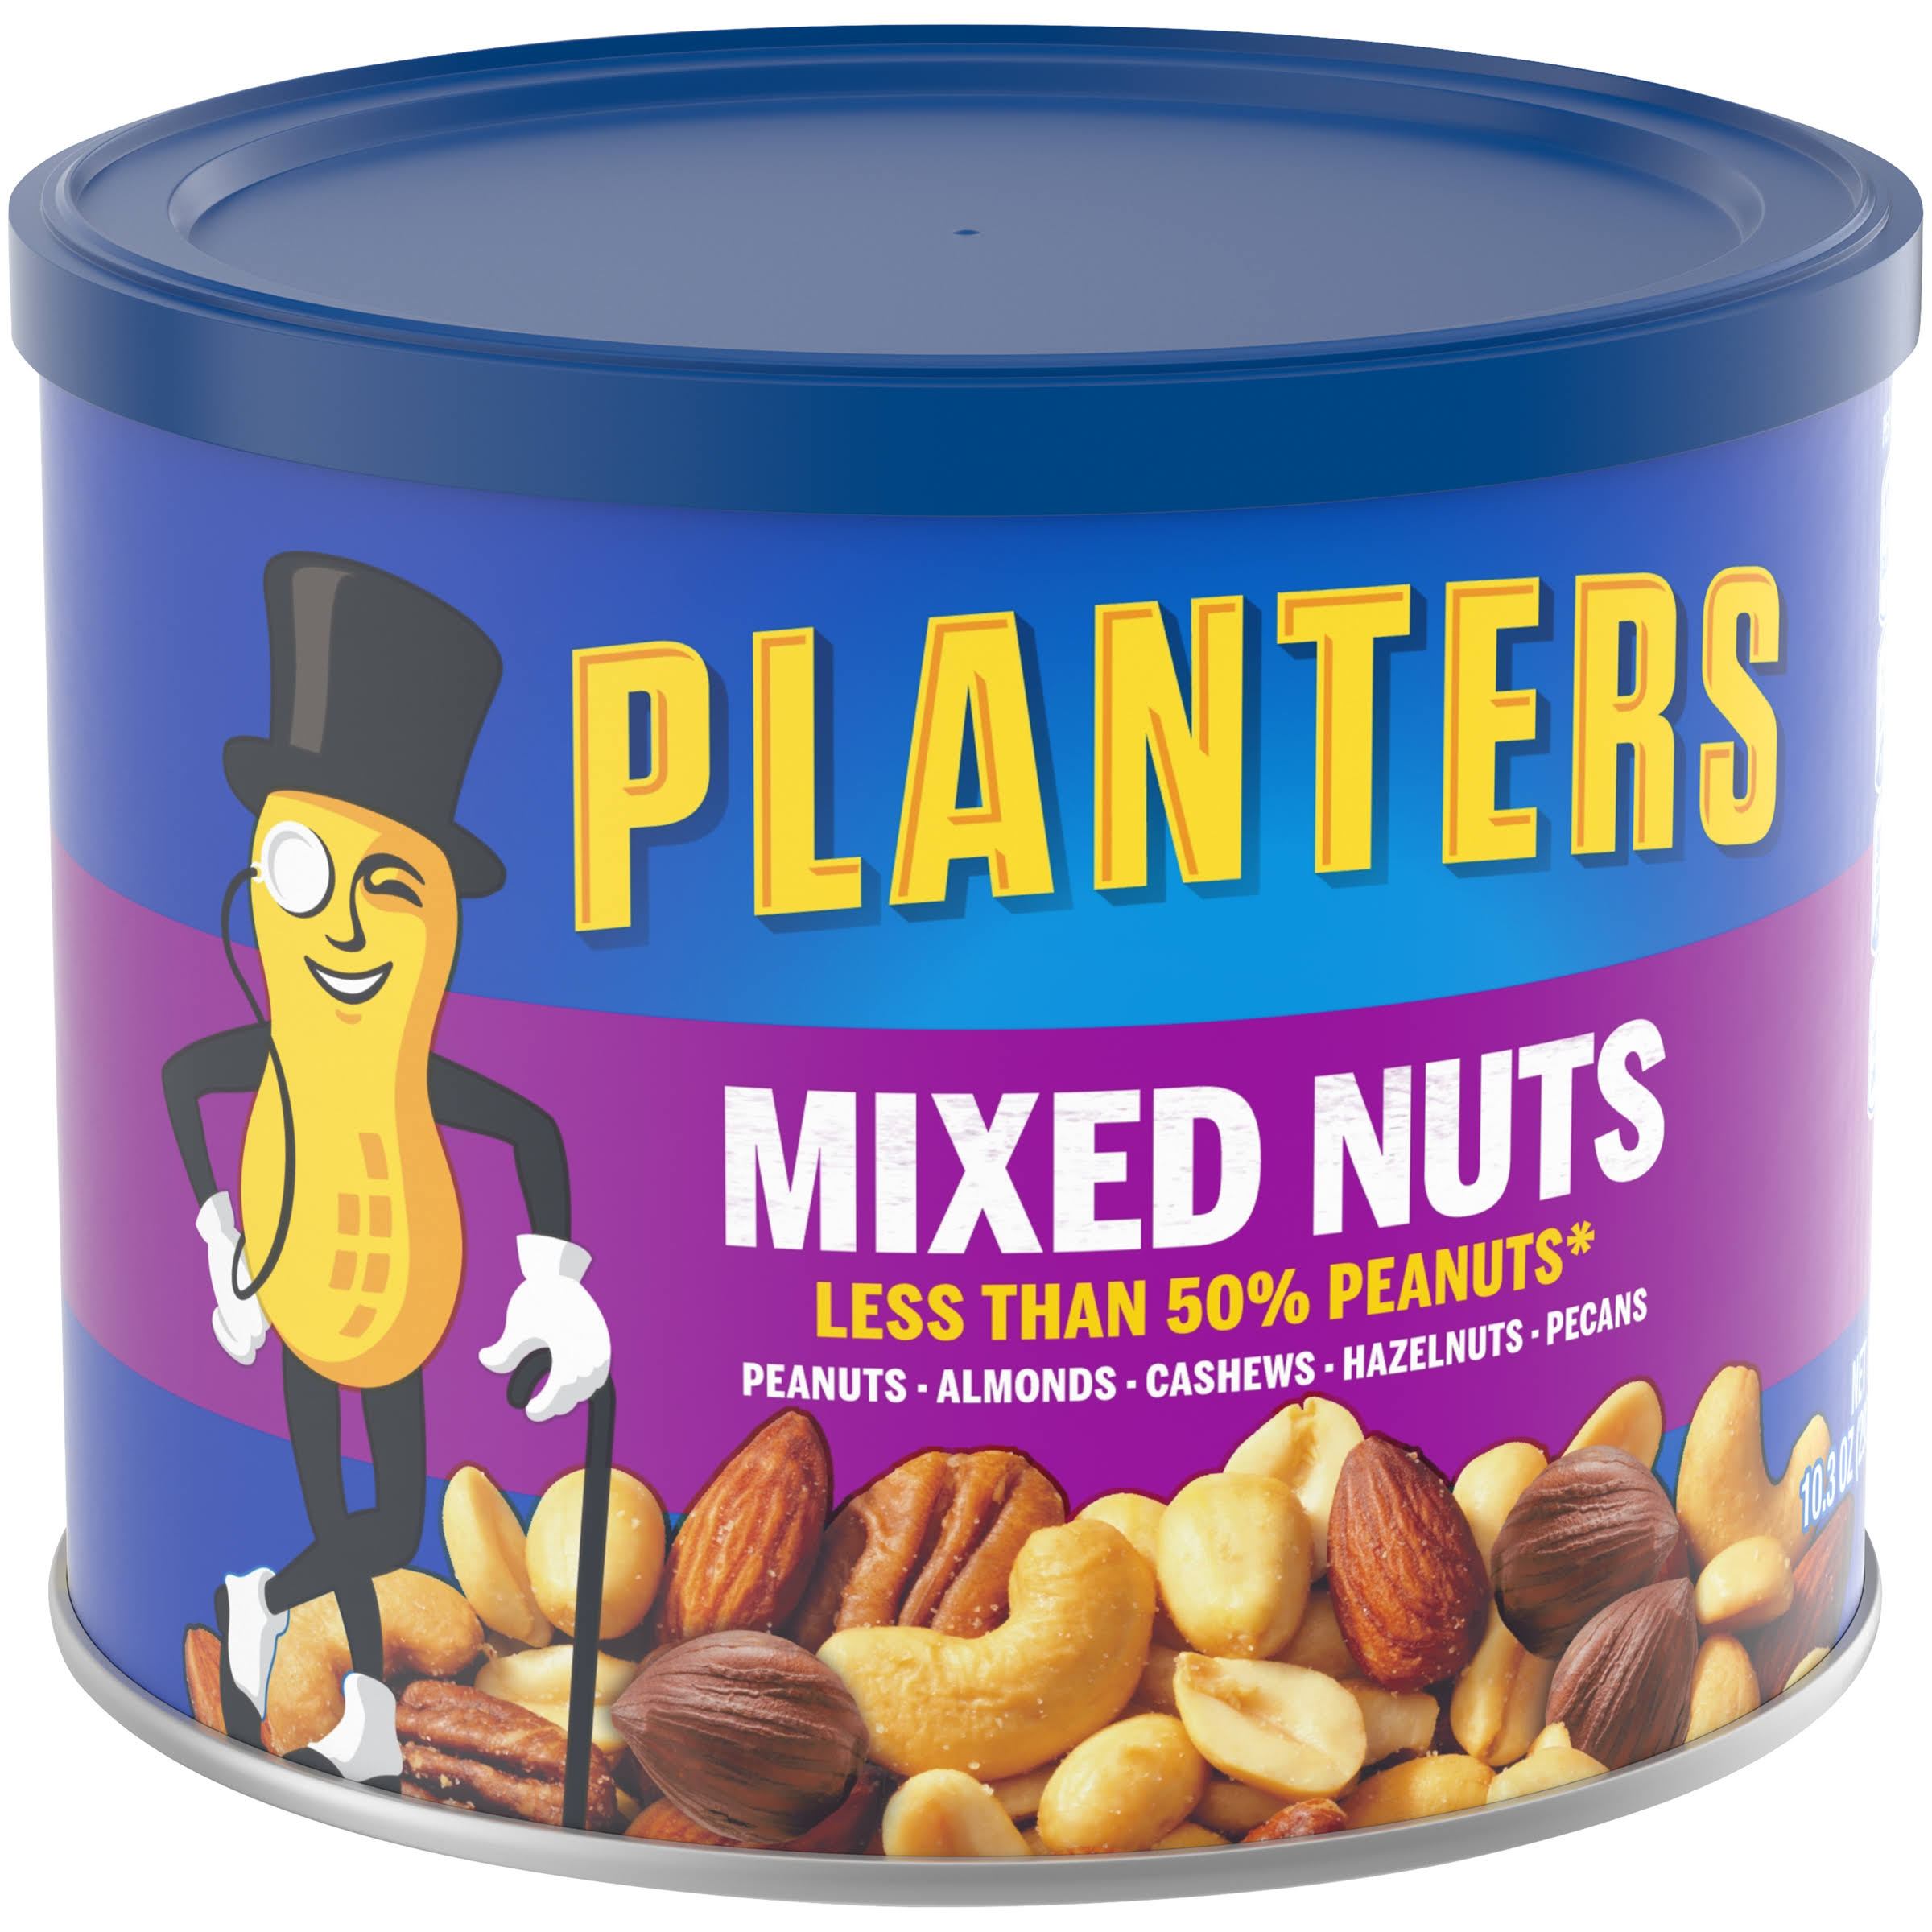 Planters Mixed Nuts - 10.3oz